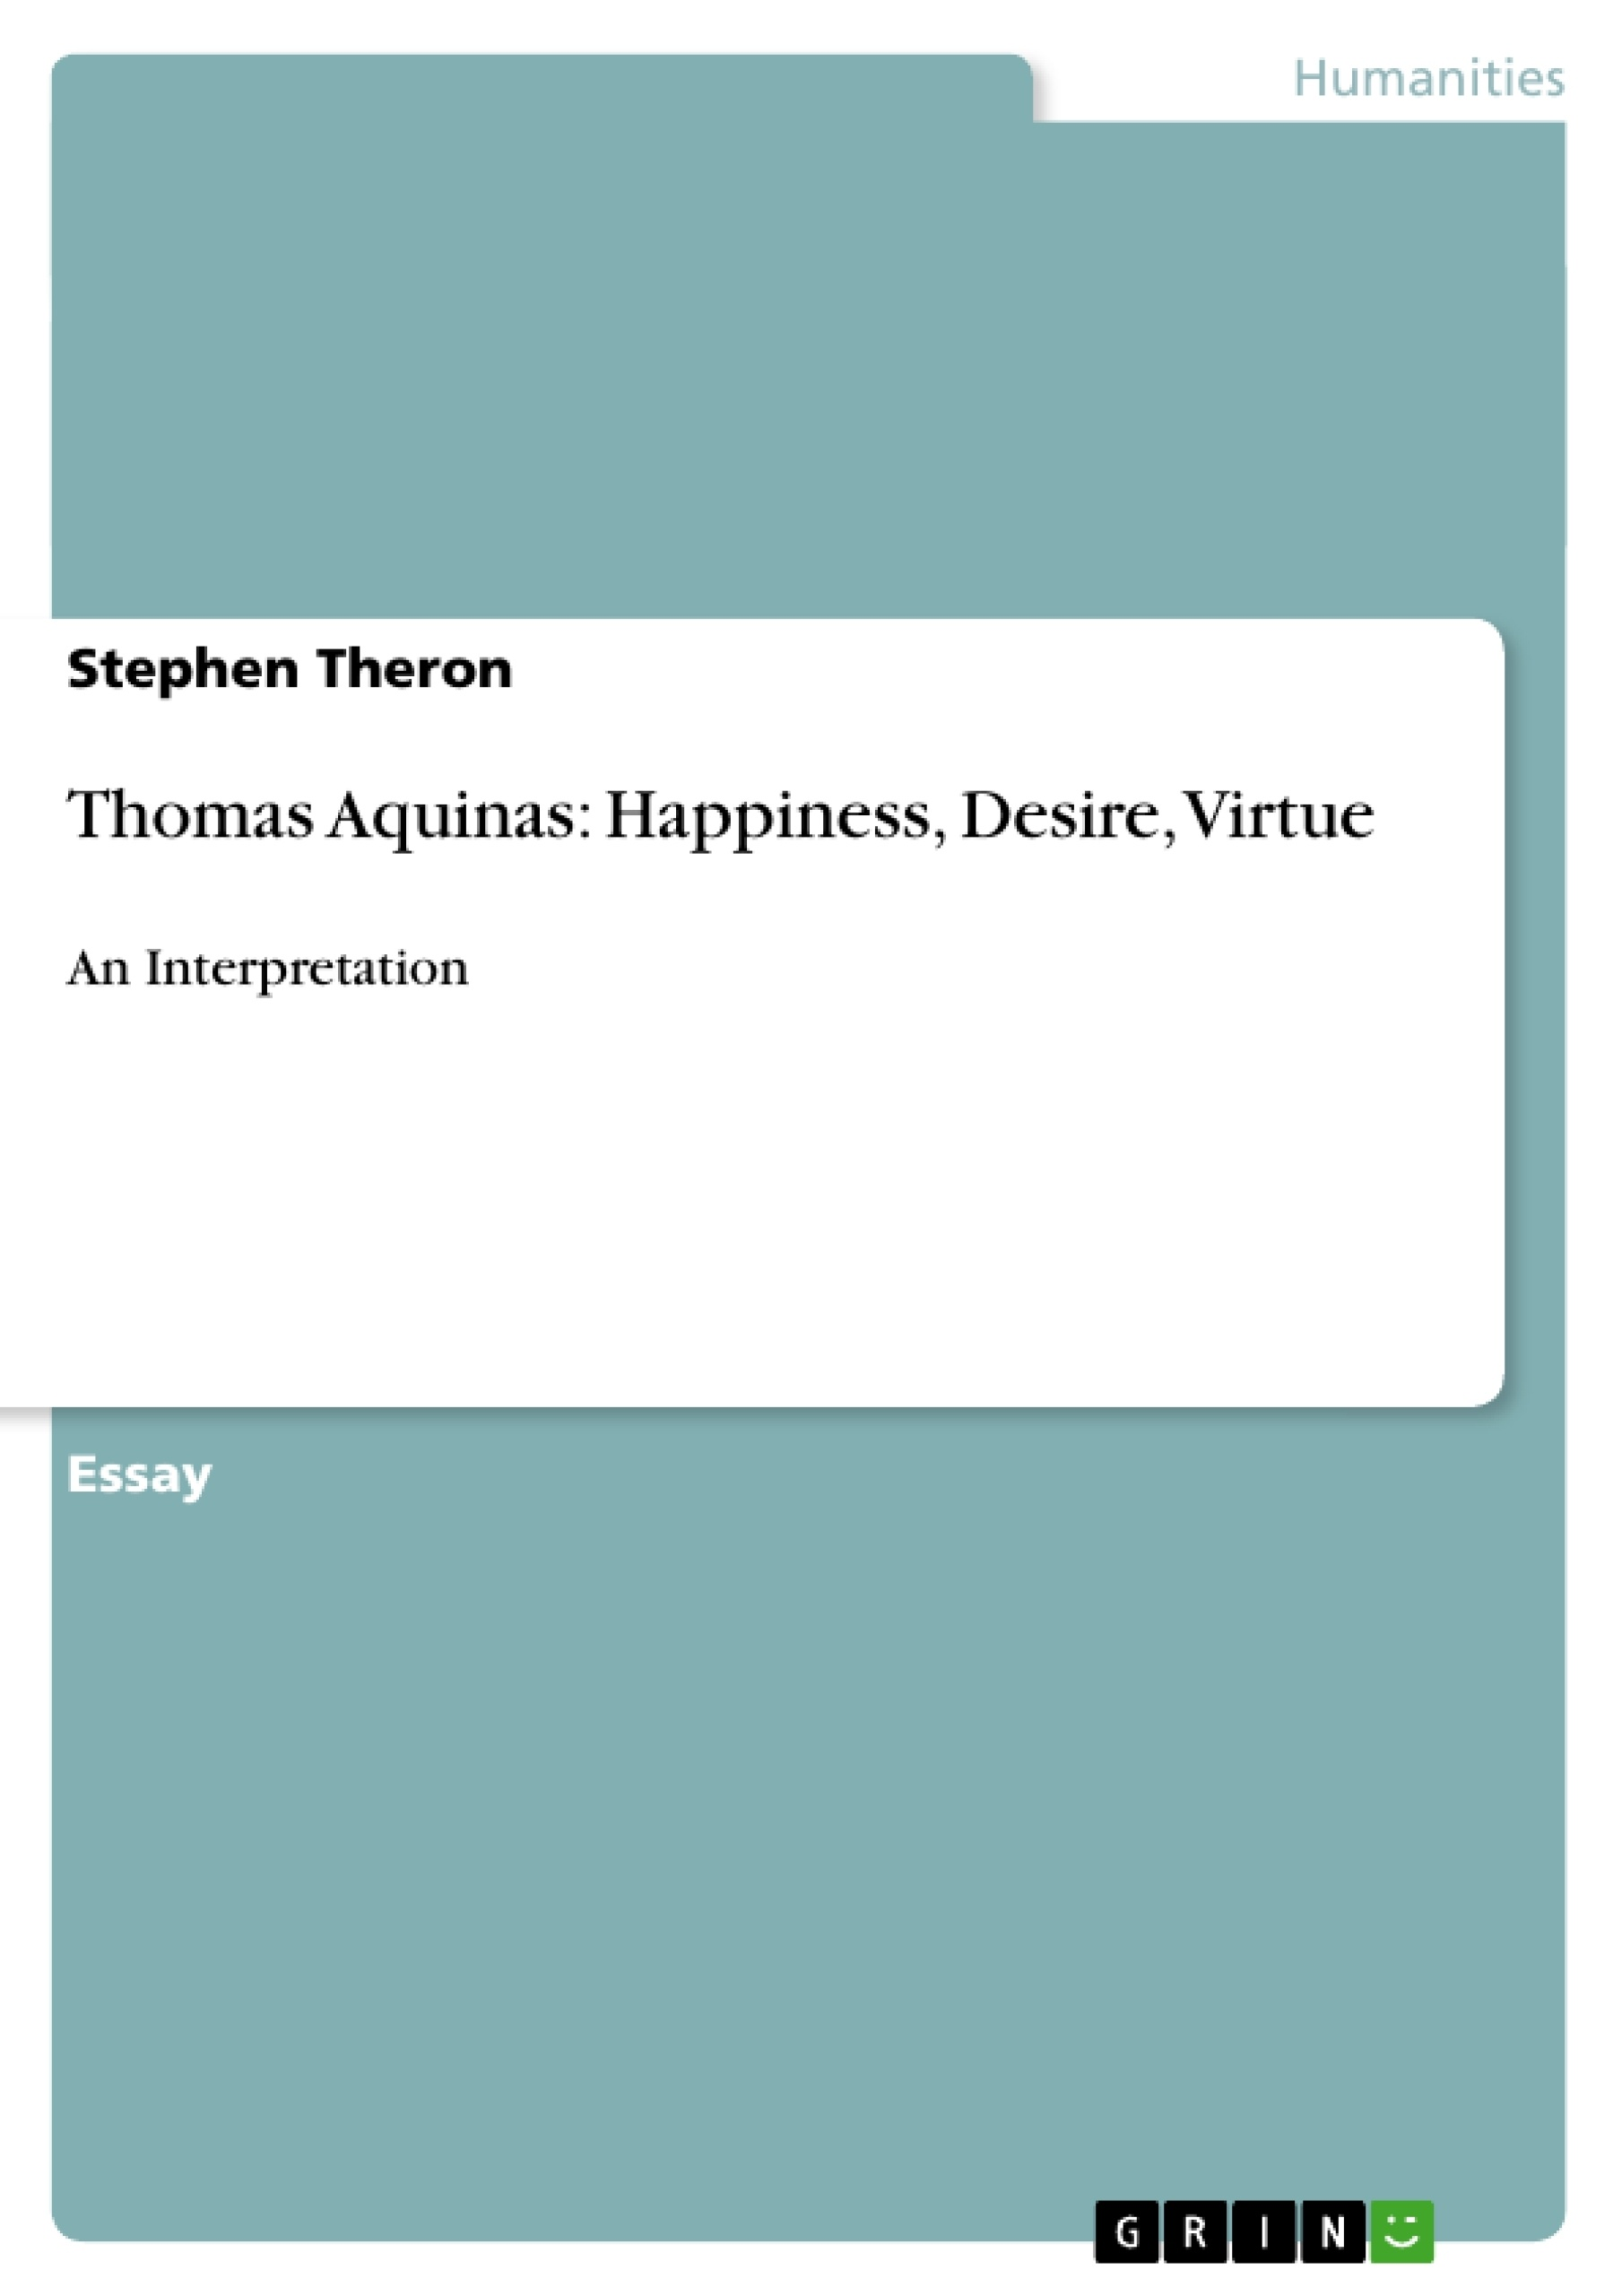 thomas aquinas happiness desire virtue publish your master s thomas aquinas happiness desire virtue publish your master s thesis bachelor s thesis essay or term paper